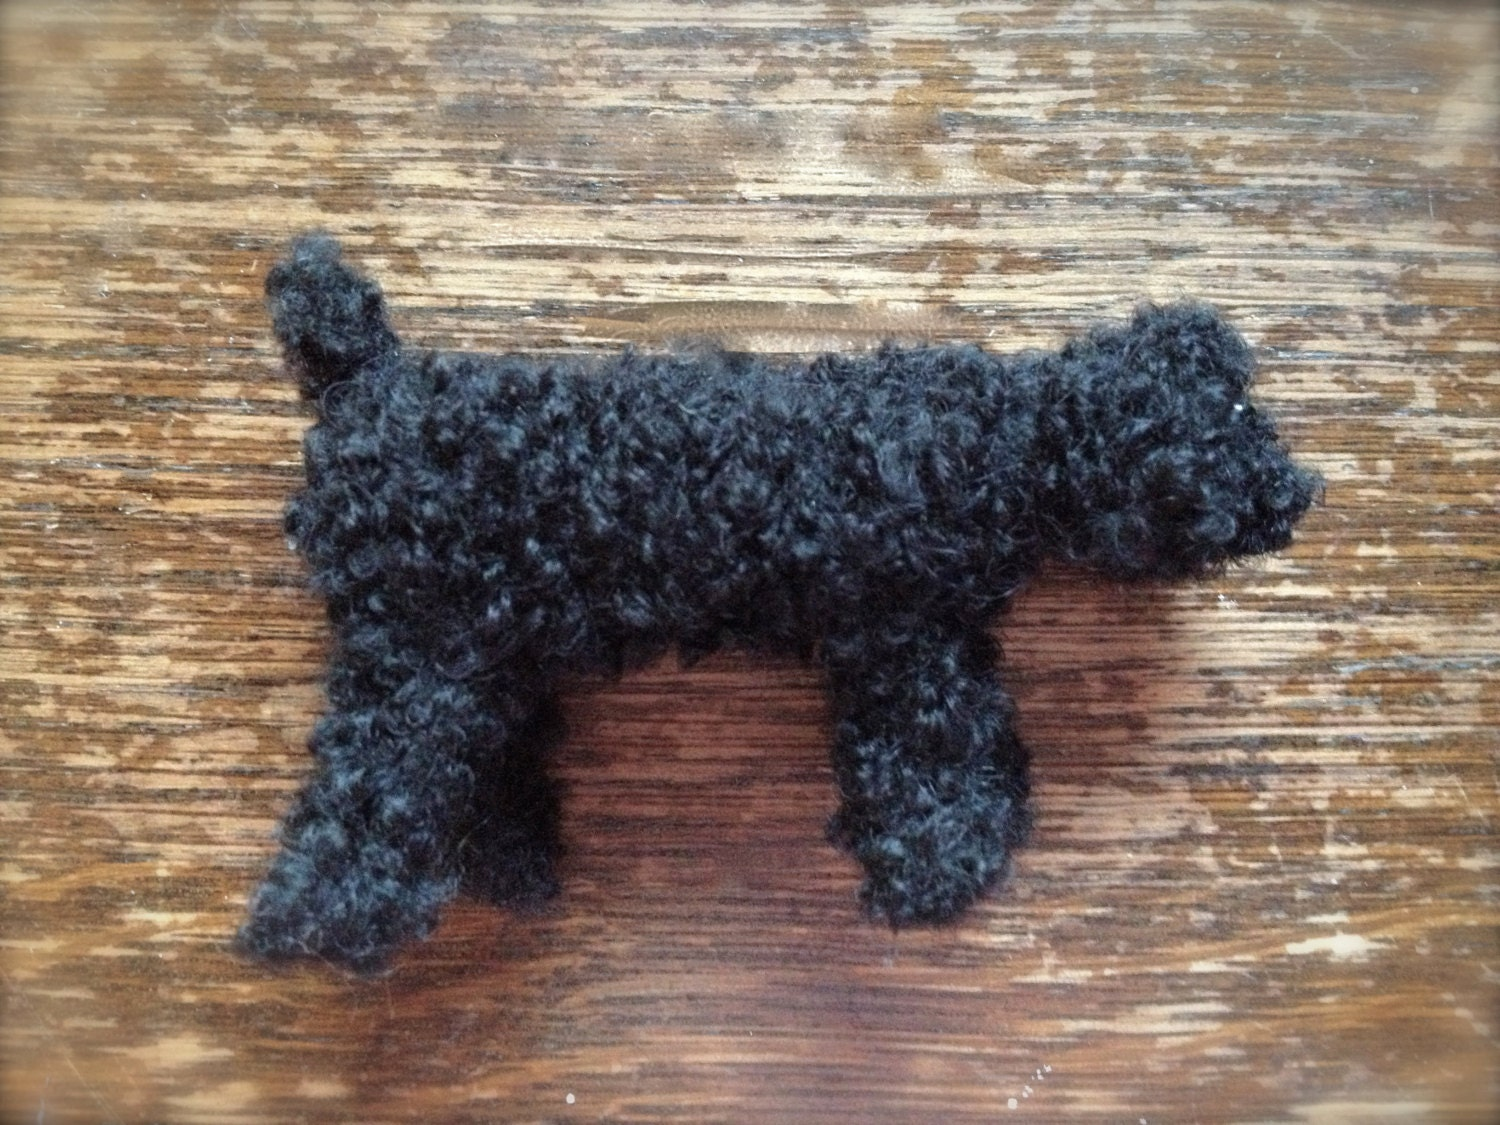 Minature Black Toy Poodle knitted in wool